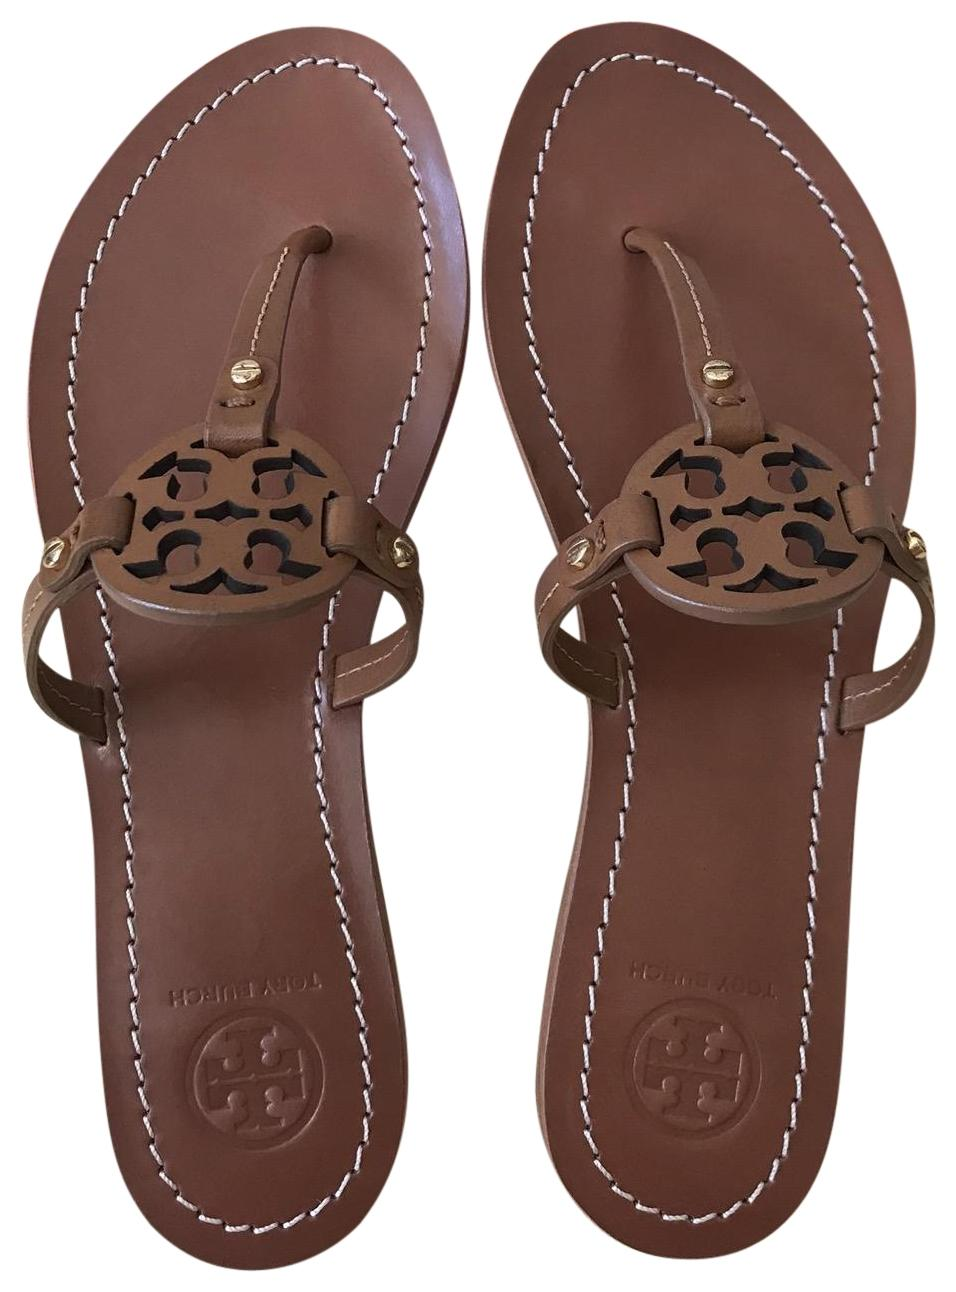 6df3e48ad Tory Tory Tory Burch Brown Mini Miller Flat Sandals Size US 8 Regular (M